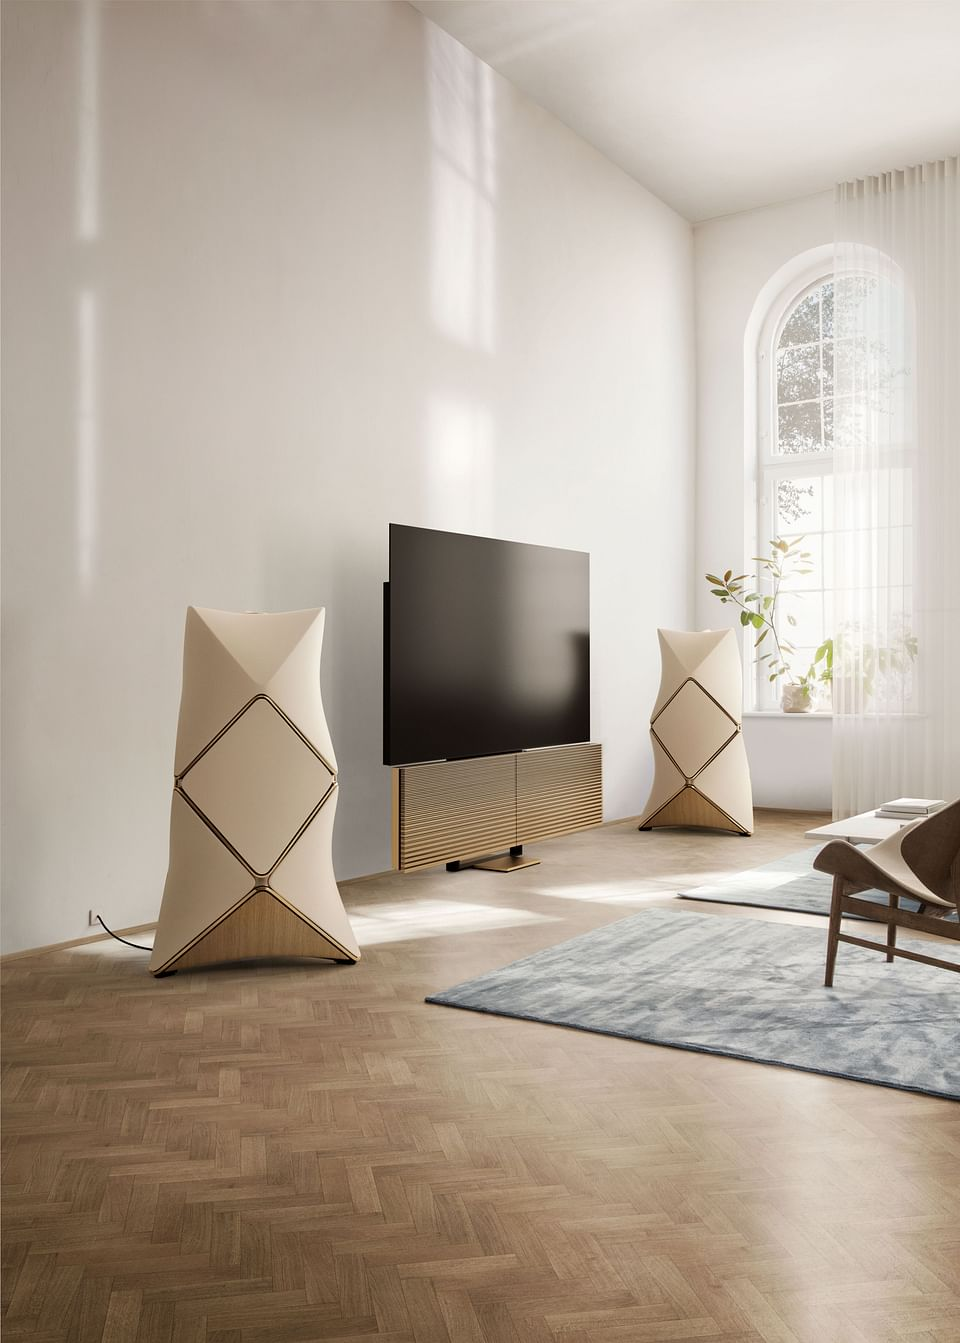 BANG & OLUFSEN 95TH ANNIVERSARY GOLDEN COLLECTION